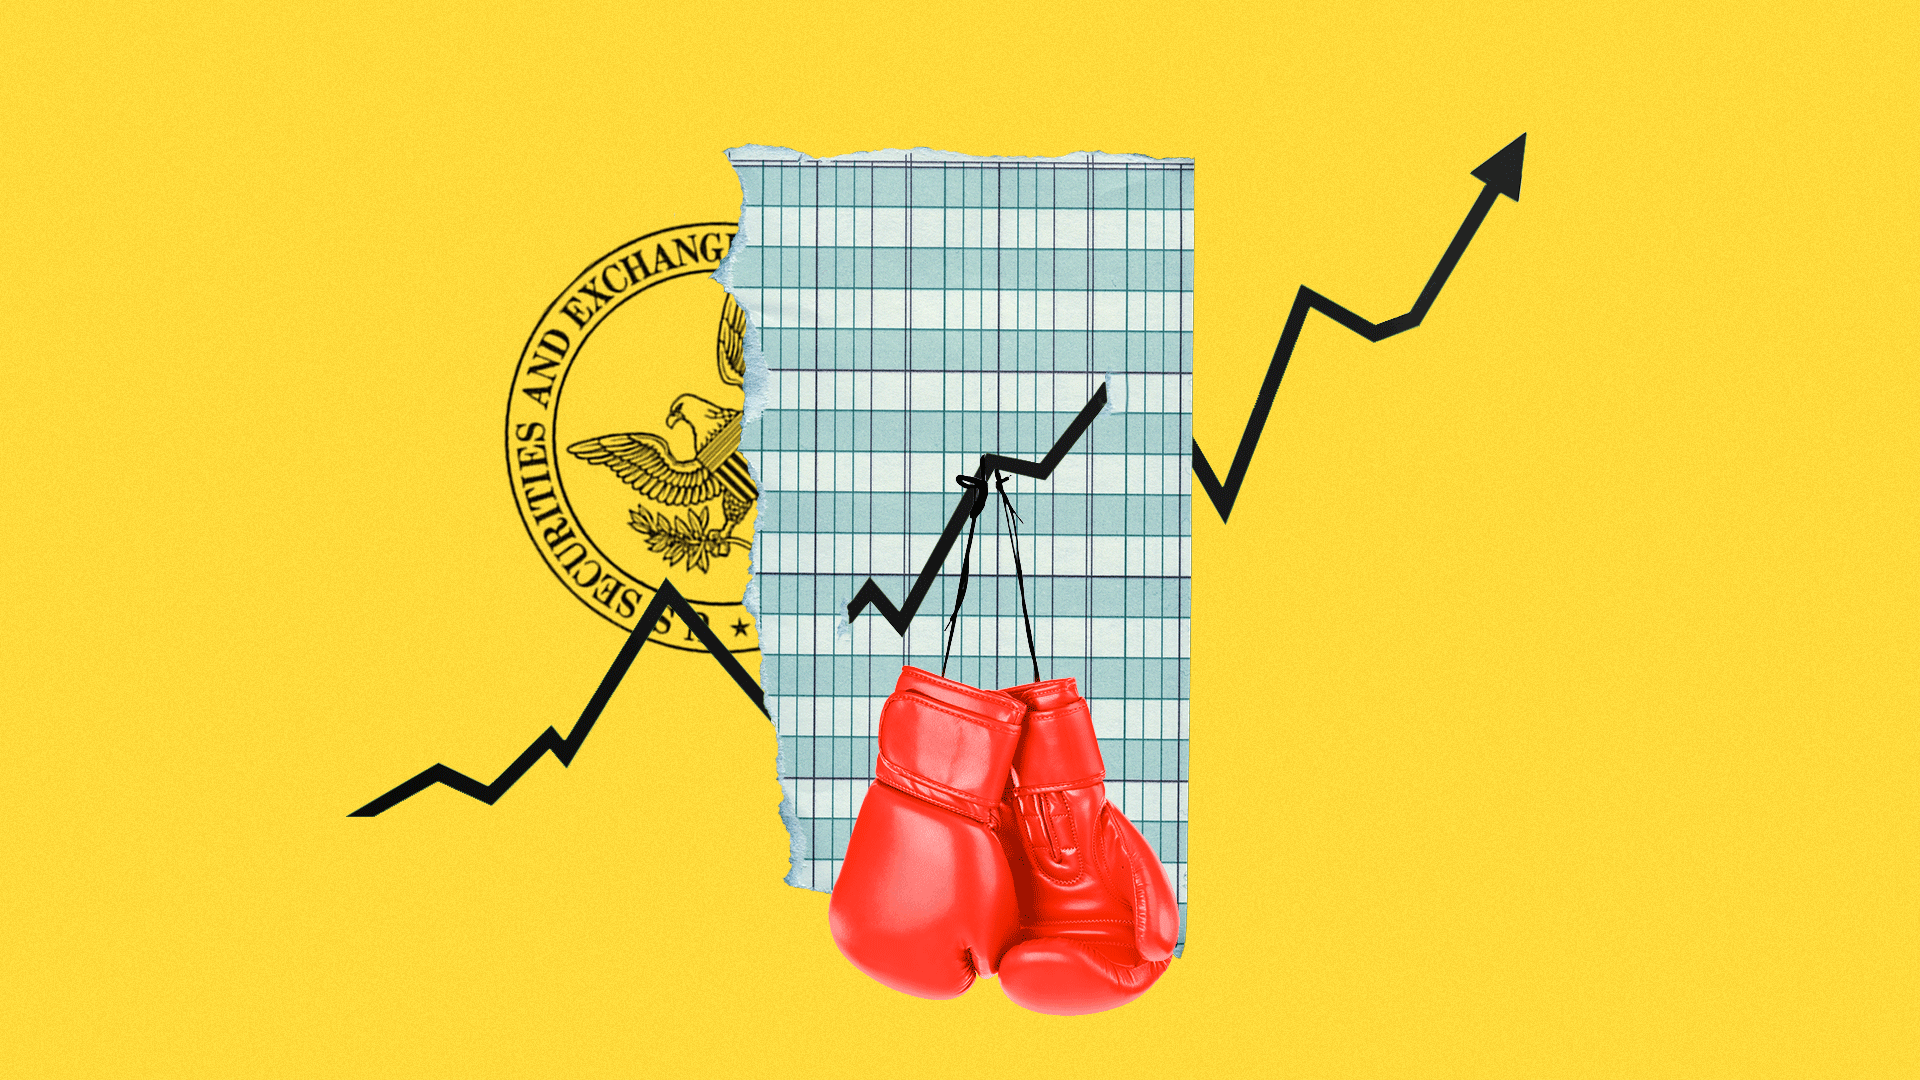 Illustrated collage of a scrap of destroyed graph paper with a market trend line and hanging boxing gloves. The SEC logo is peeking out in the background.